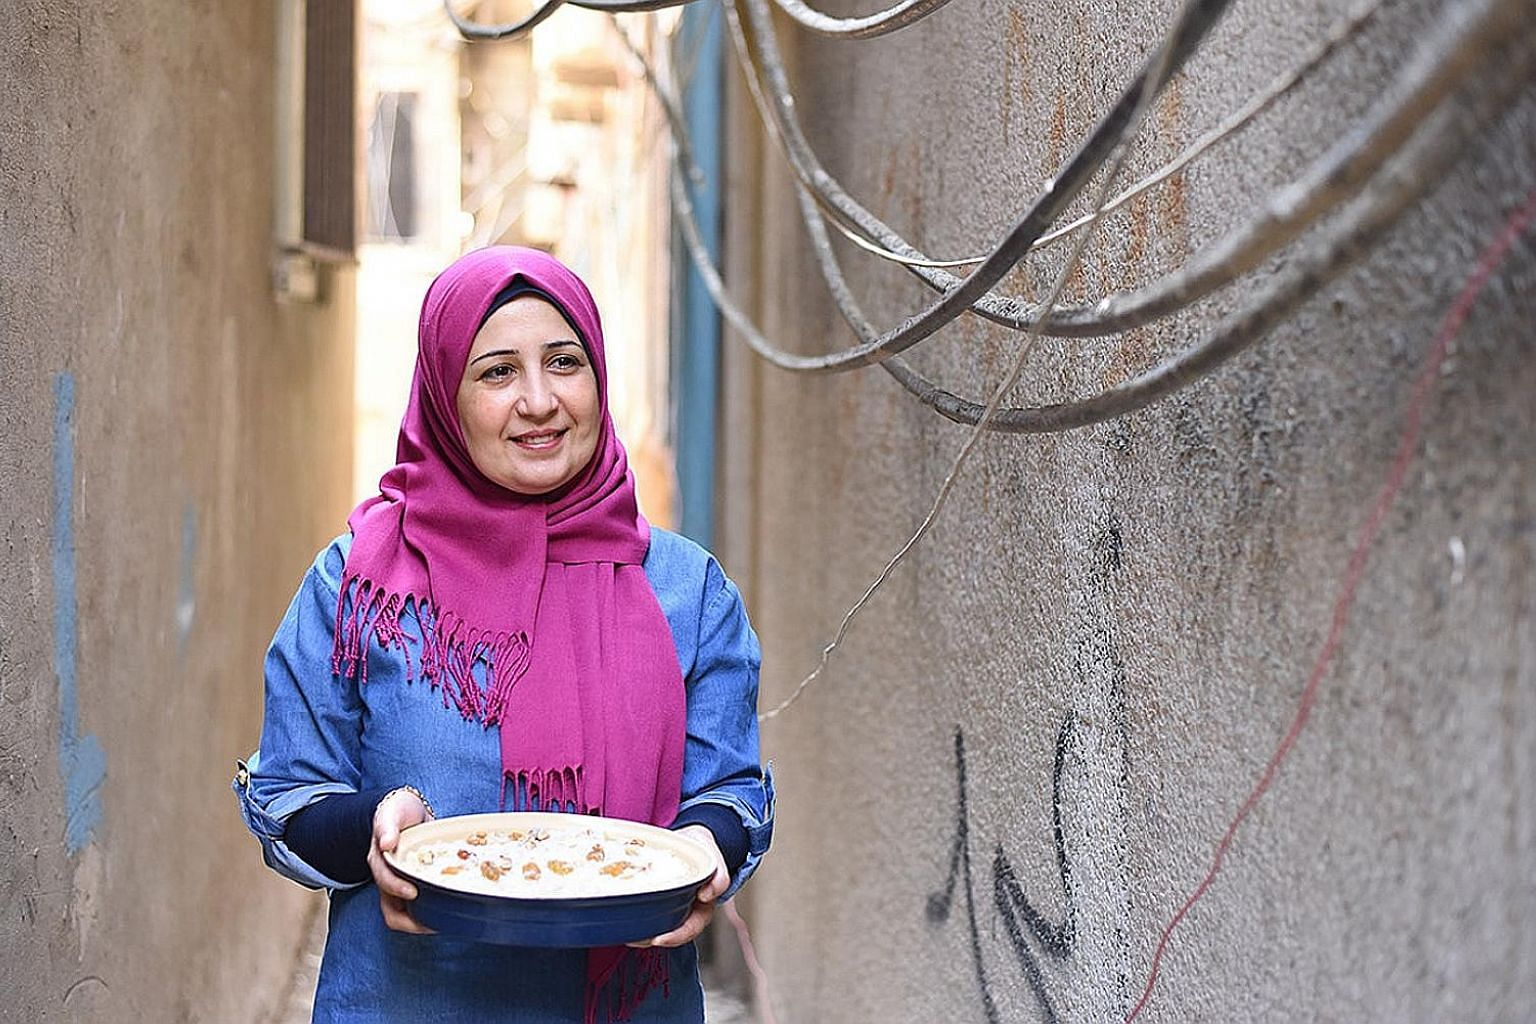 In Soufra, Mariam Shaar founds a catering unit that provides employment and income to her fellow refugees in Lebanon.